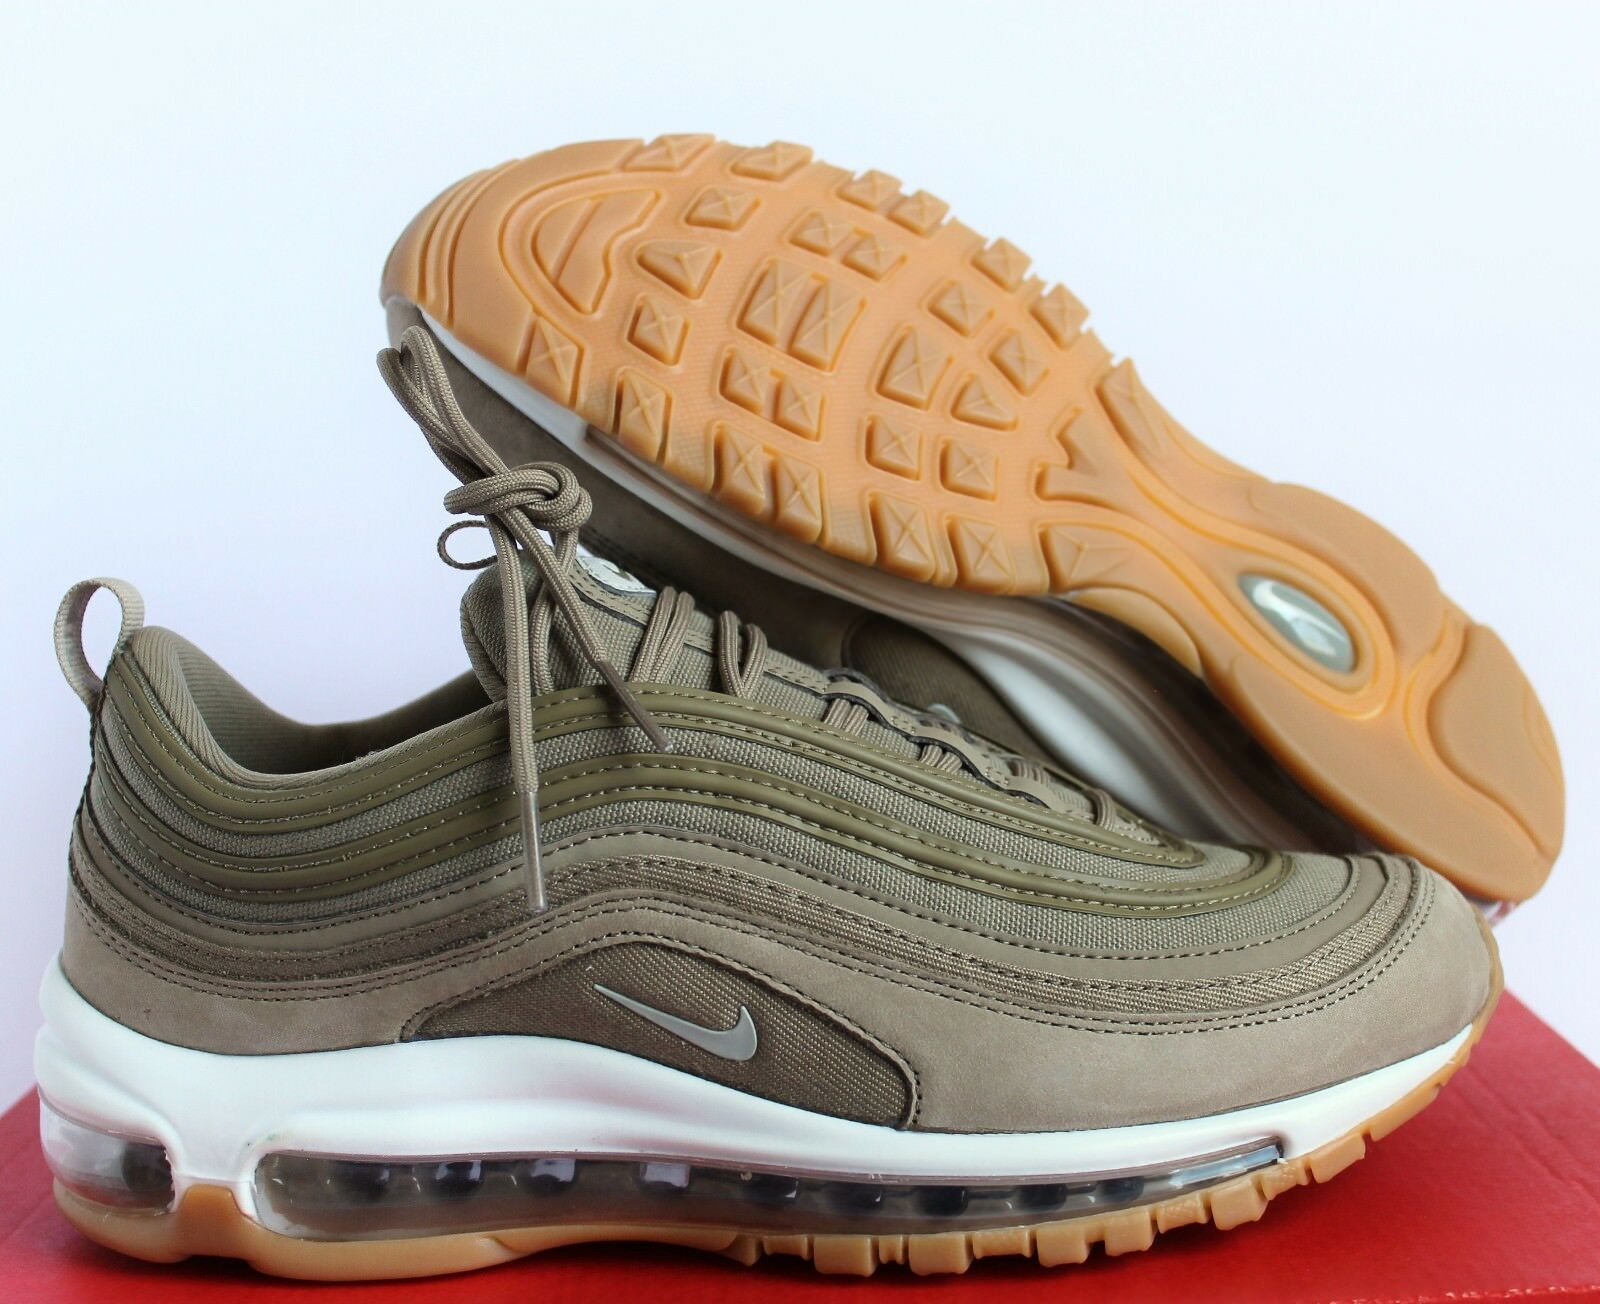 NIKE femmesAIR MAX 97 UL ULTRAKHAKI-LIGHT BONE SZ 9 [AJ2248-200]